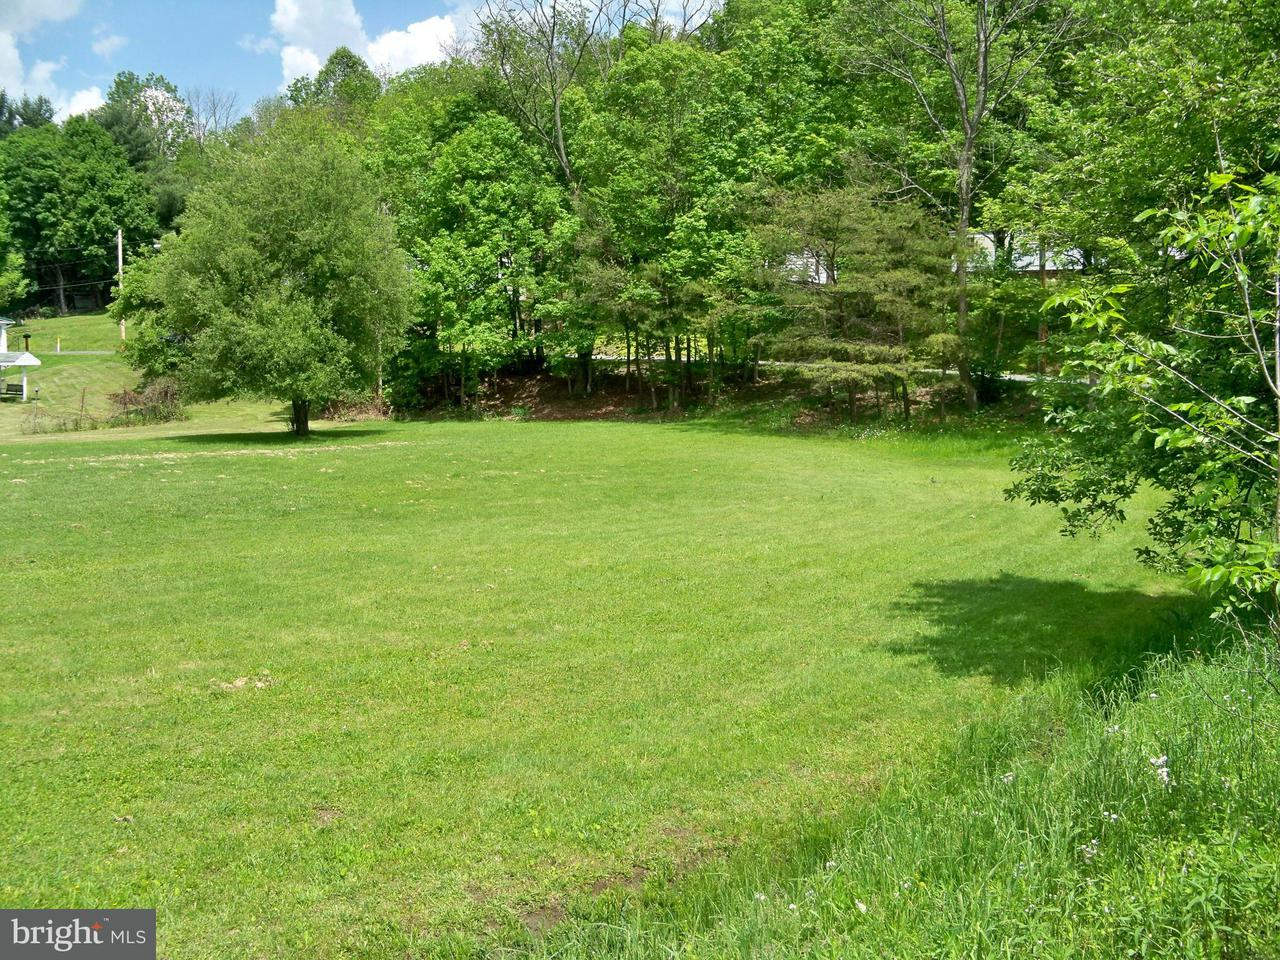 Land for Sale at Quinn St Midland, Maryland 21542 United States